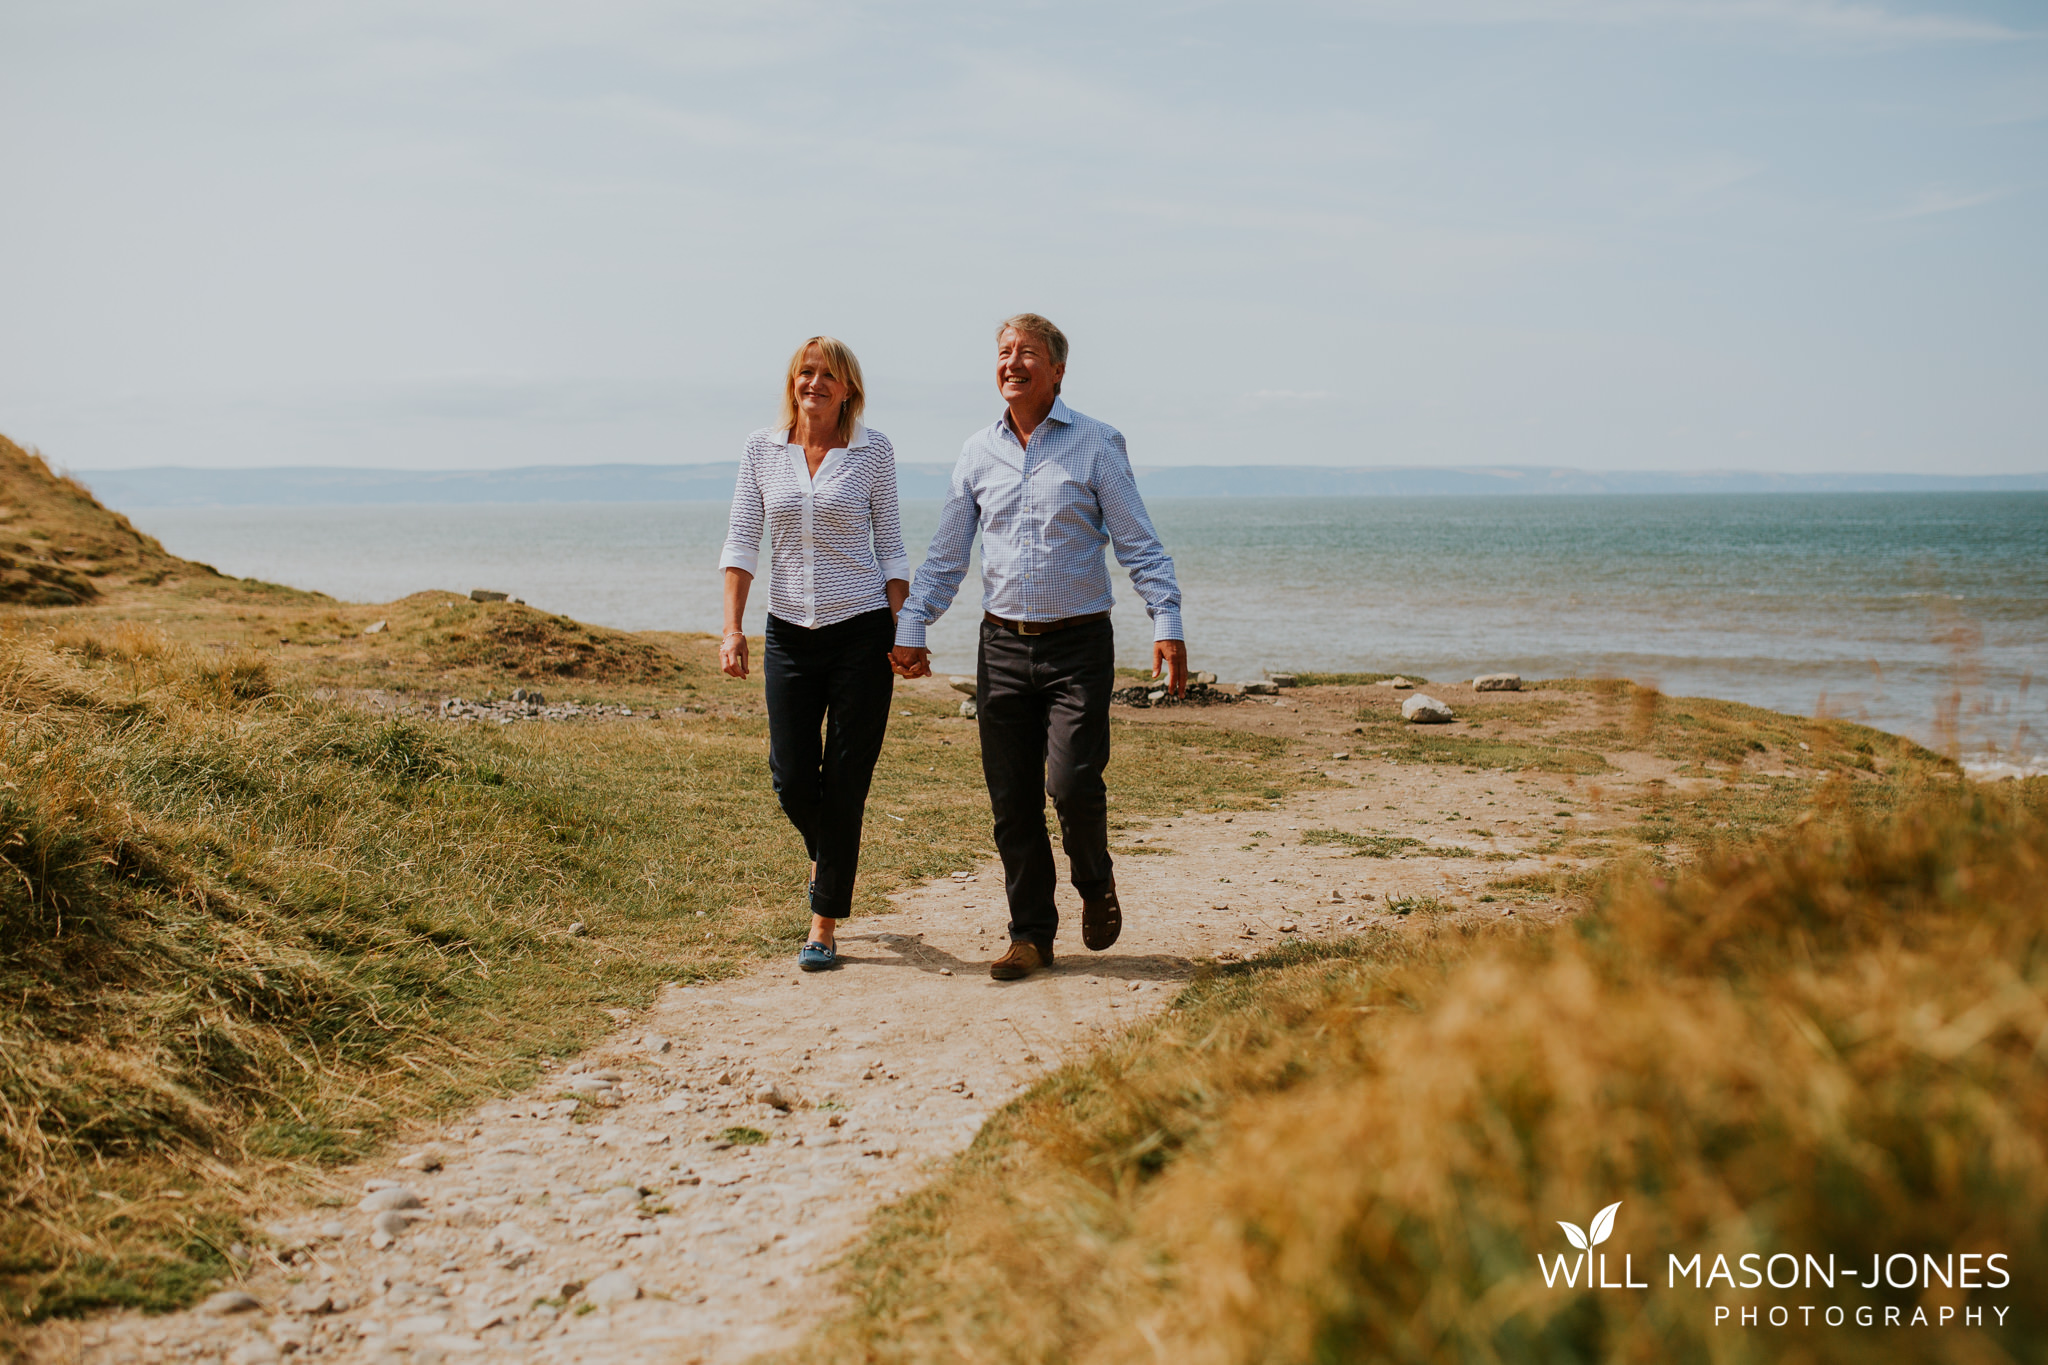 swansea-cardiff-pre-wedding-photographer-nash-point-lighthouse-llantwit-major-57.jpg